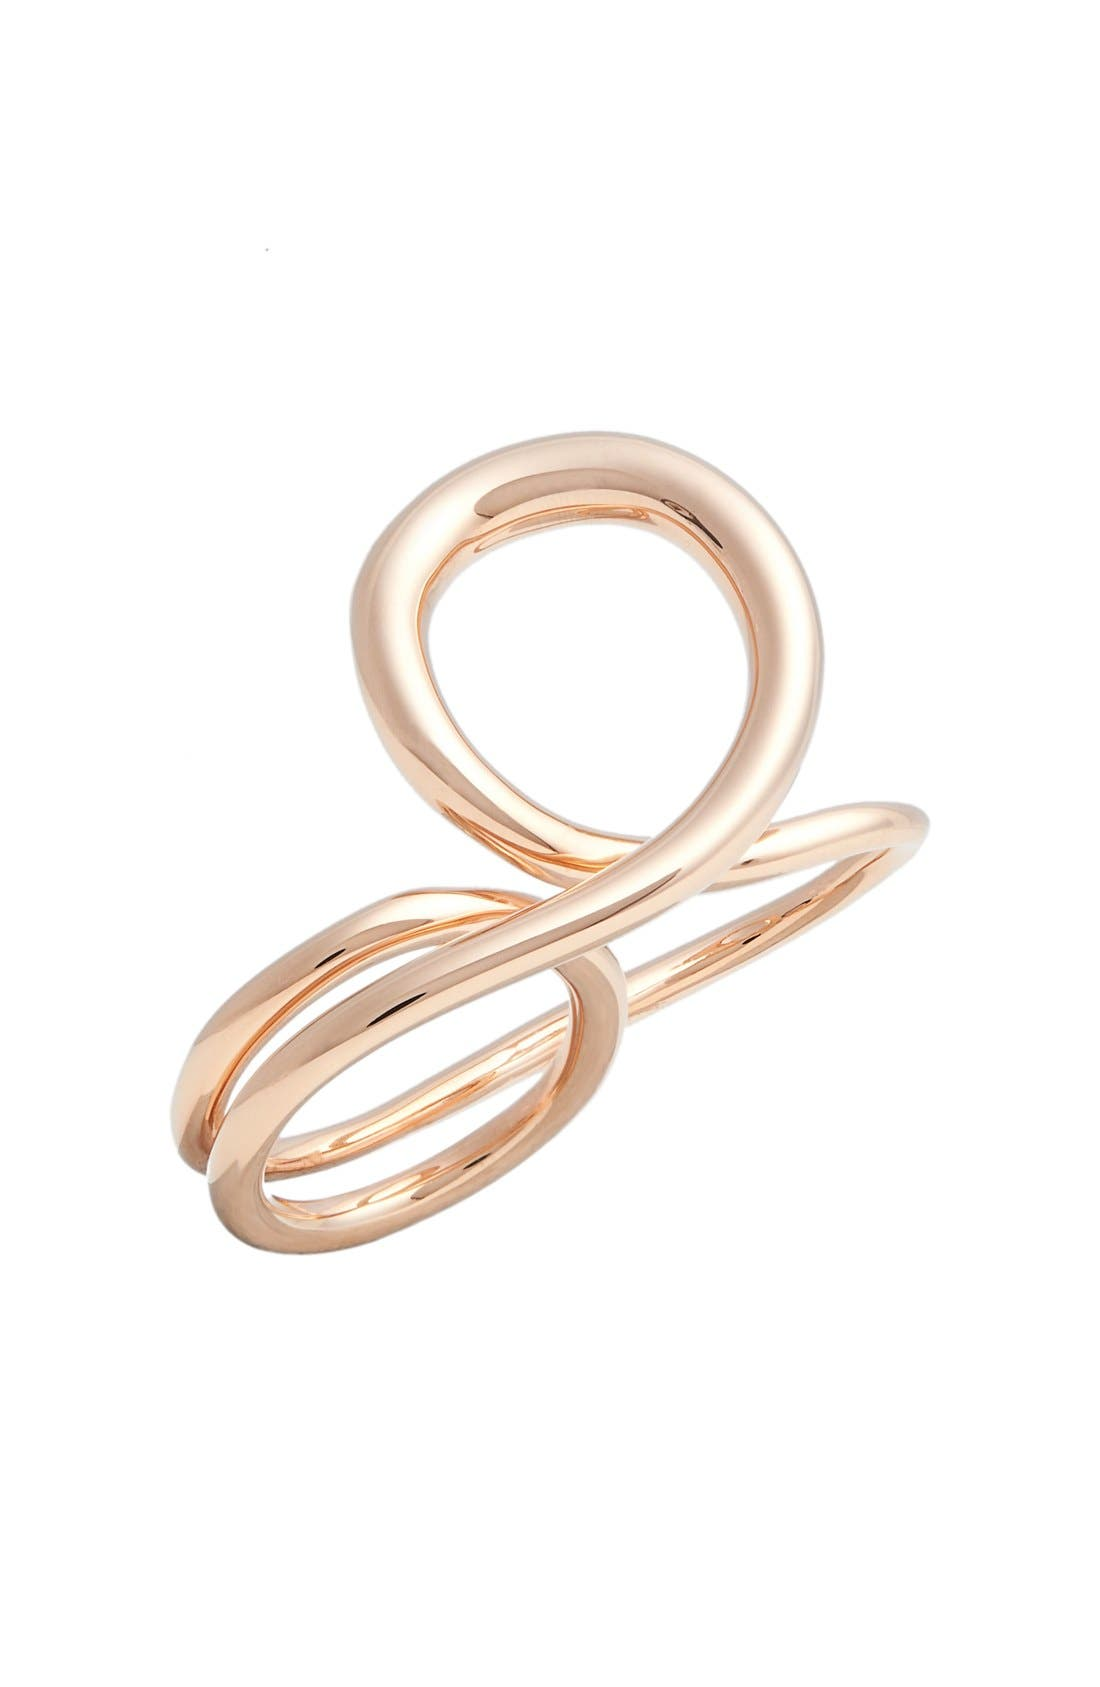 'Gamma Trip' Vermeil Two-Finger Ring,                             Main thumbnail 1, color,                             Pink Vermeil